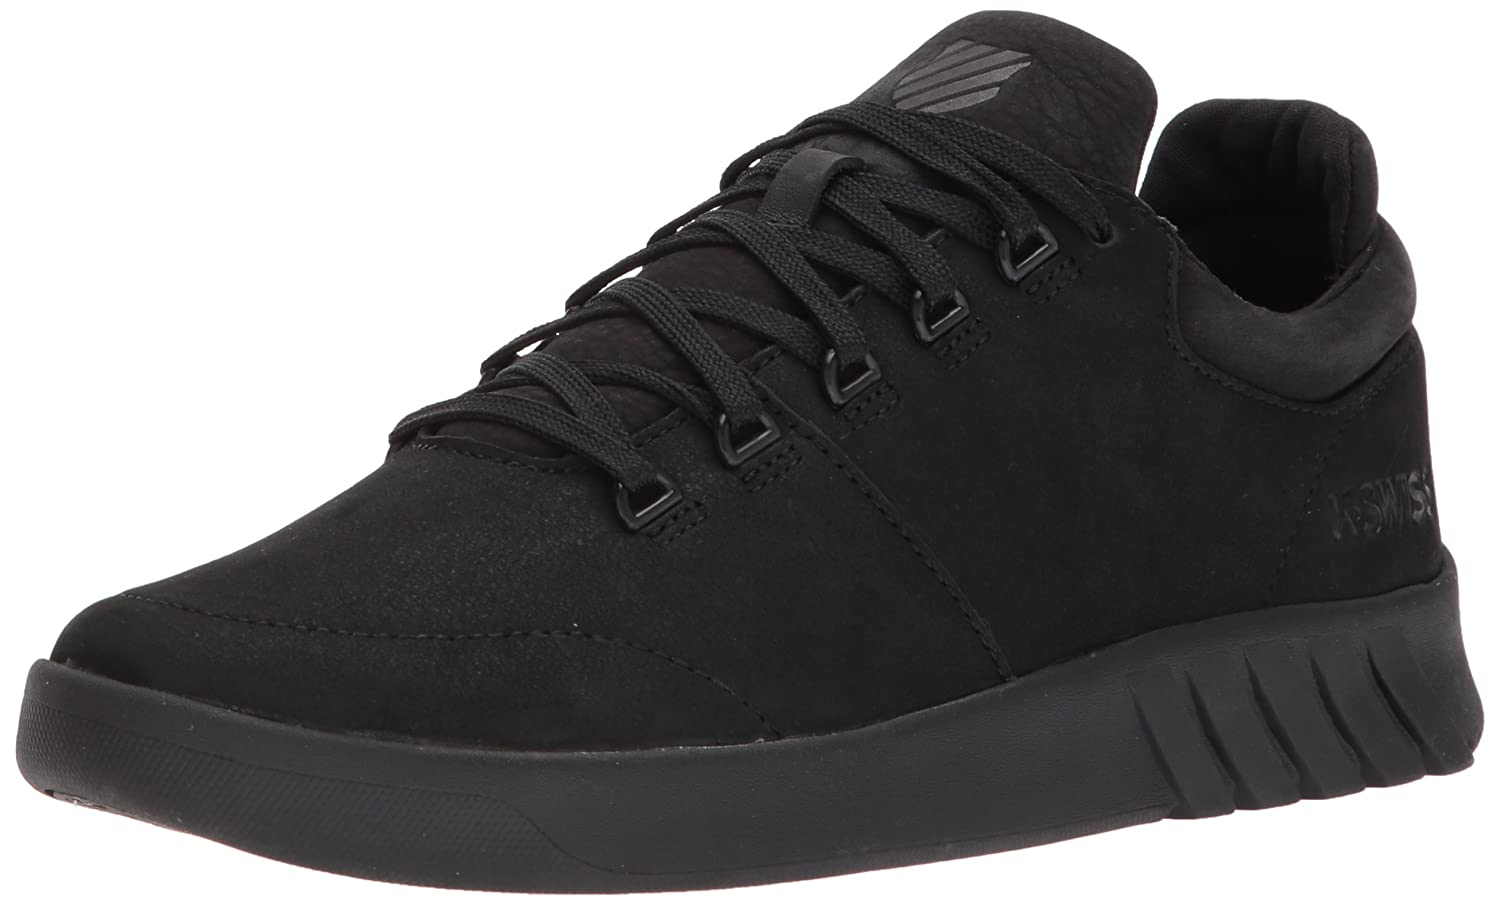 K-Swiss Women's Aero Trainer Sneaker B0728CNXWH 5.5 B(M) US|Black